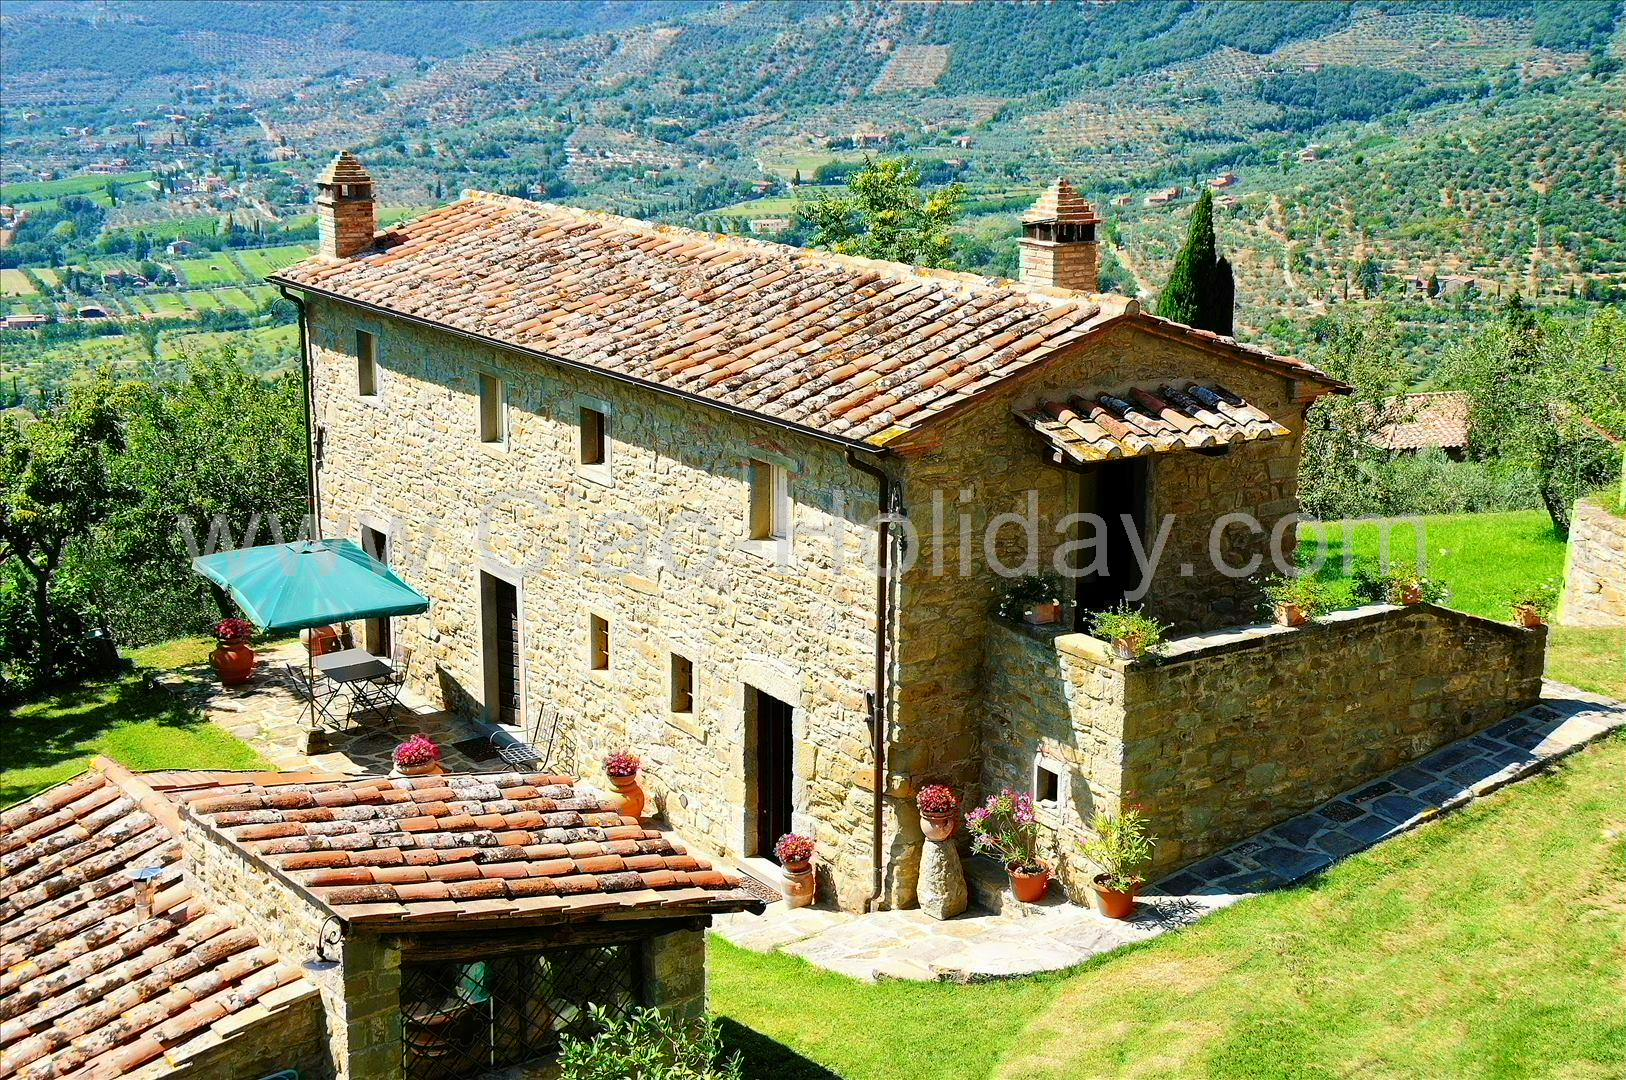 Family House in Cortona, Tuscany for rent. 200 Bedrooms and 20 Bathrooms